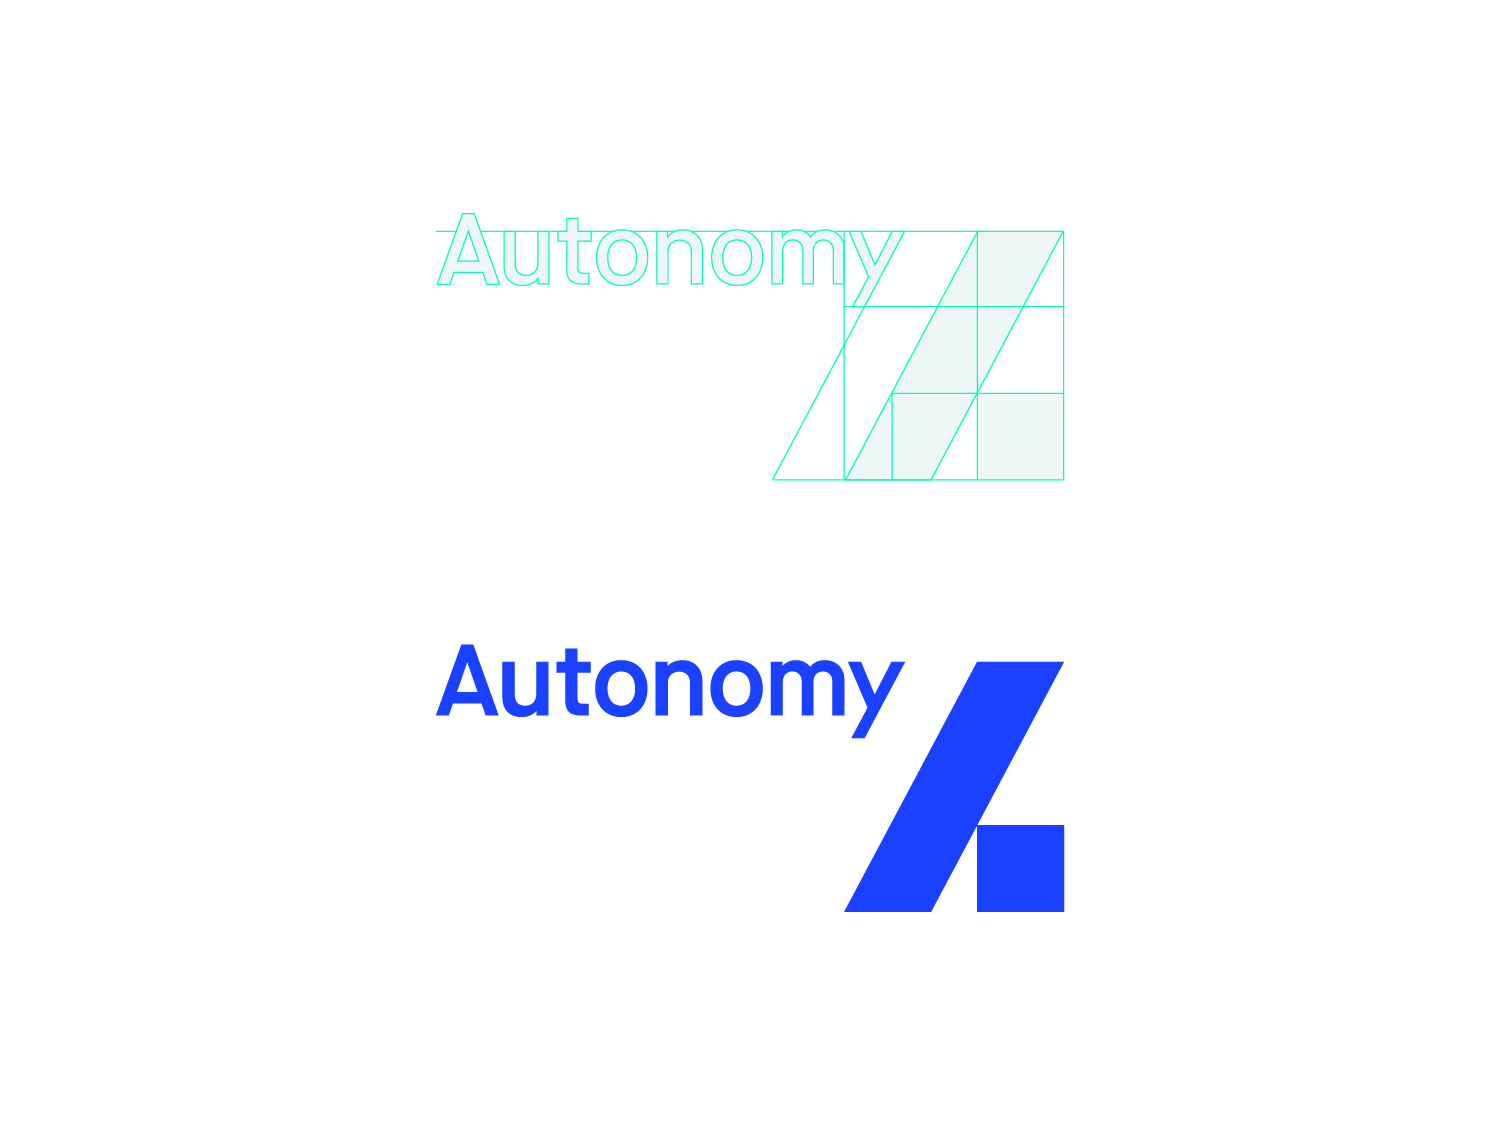 Image showing the geometry inherent in the newly rebranded Autonomy logo